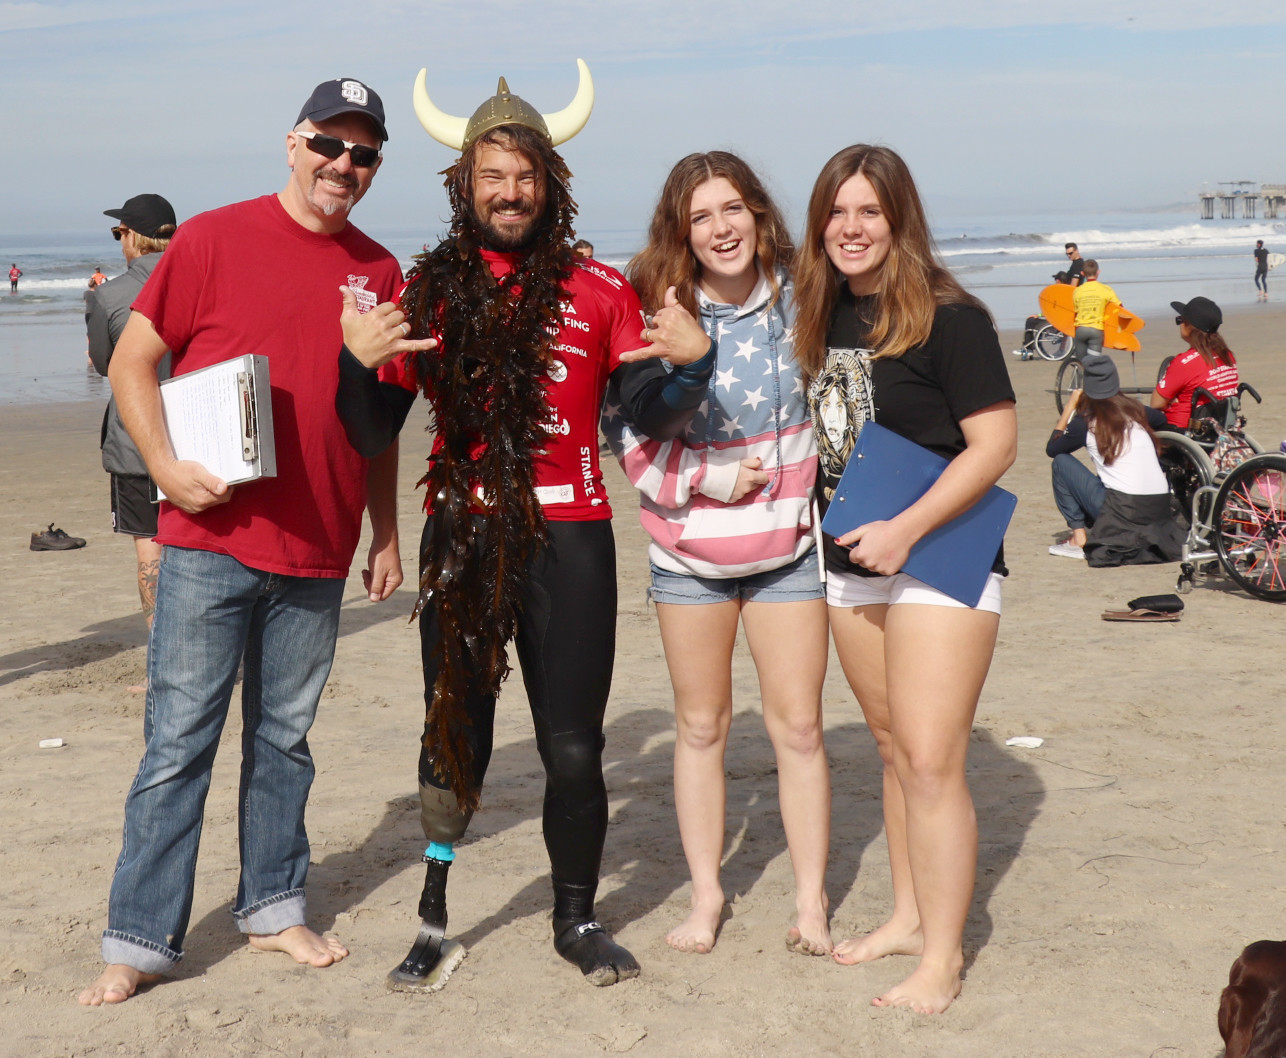 Shad, Coco and Shyla Bradley enjoy the 2017 Stance ISA World Adaptive Surfing Championship with Ismael Guillorit, one of its participants.